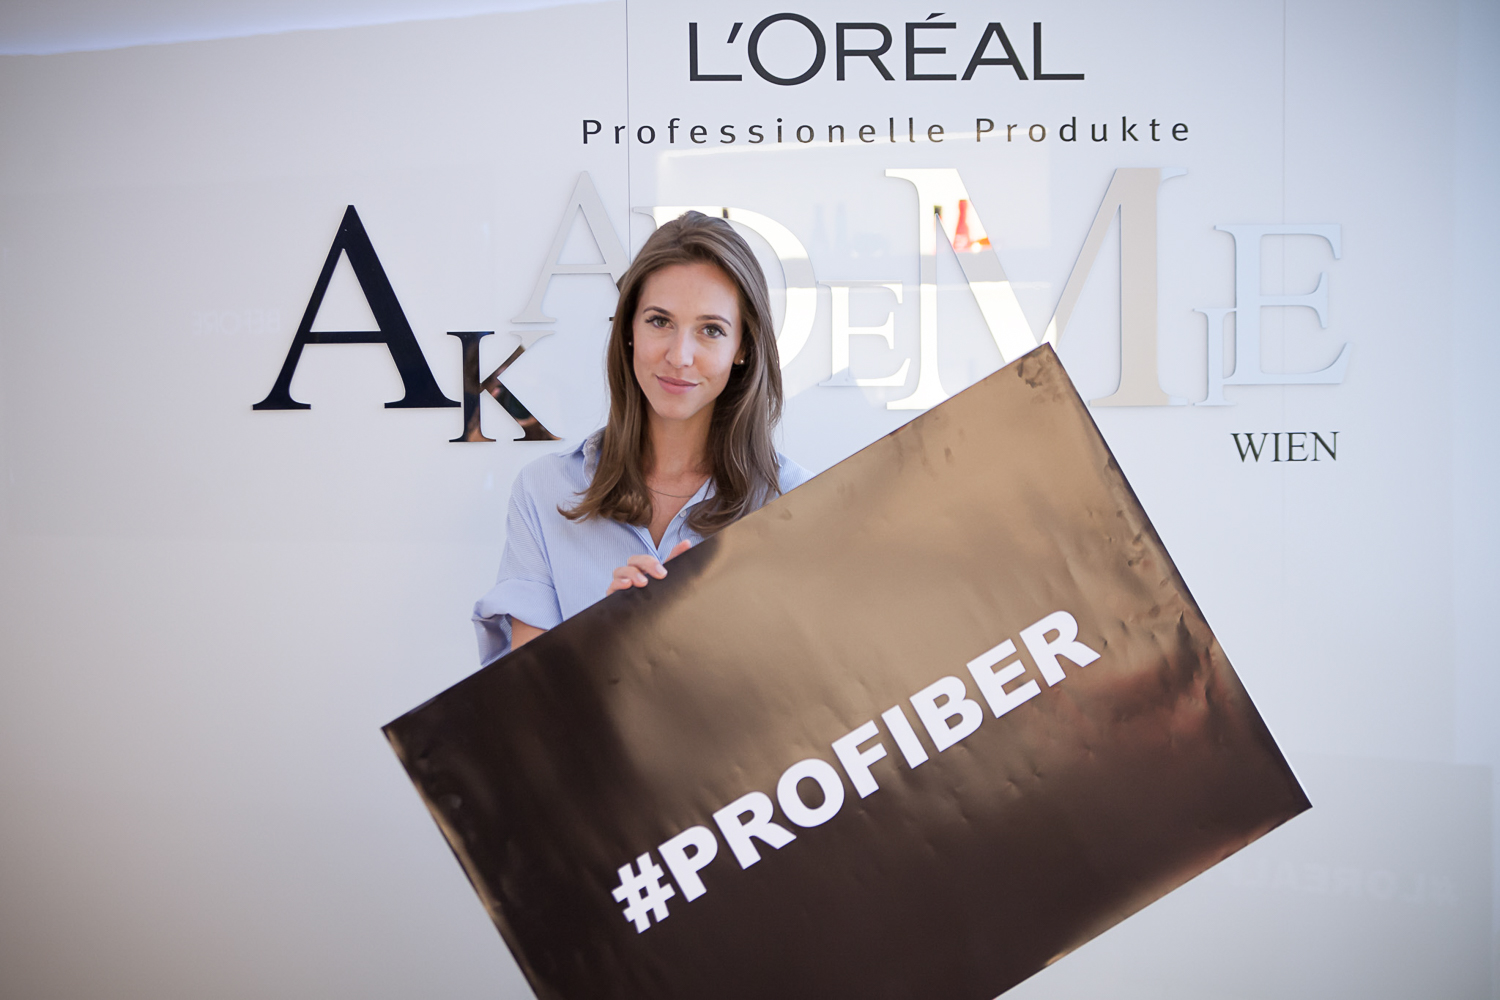 L'Oréal Professionell: Pro Fiber Treatment